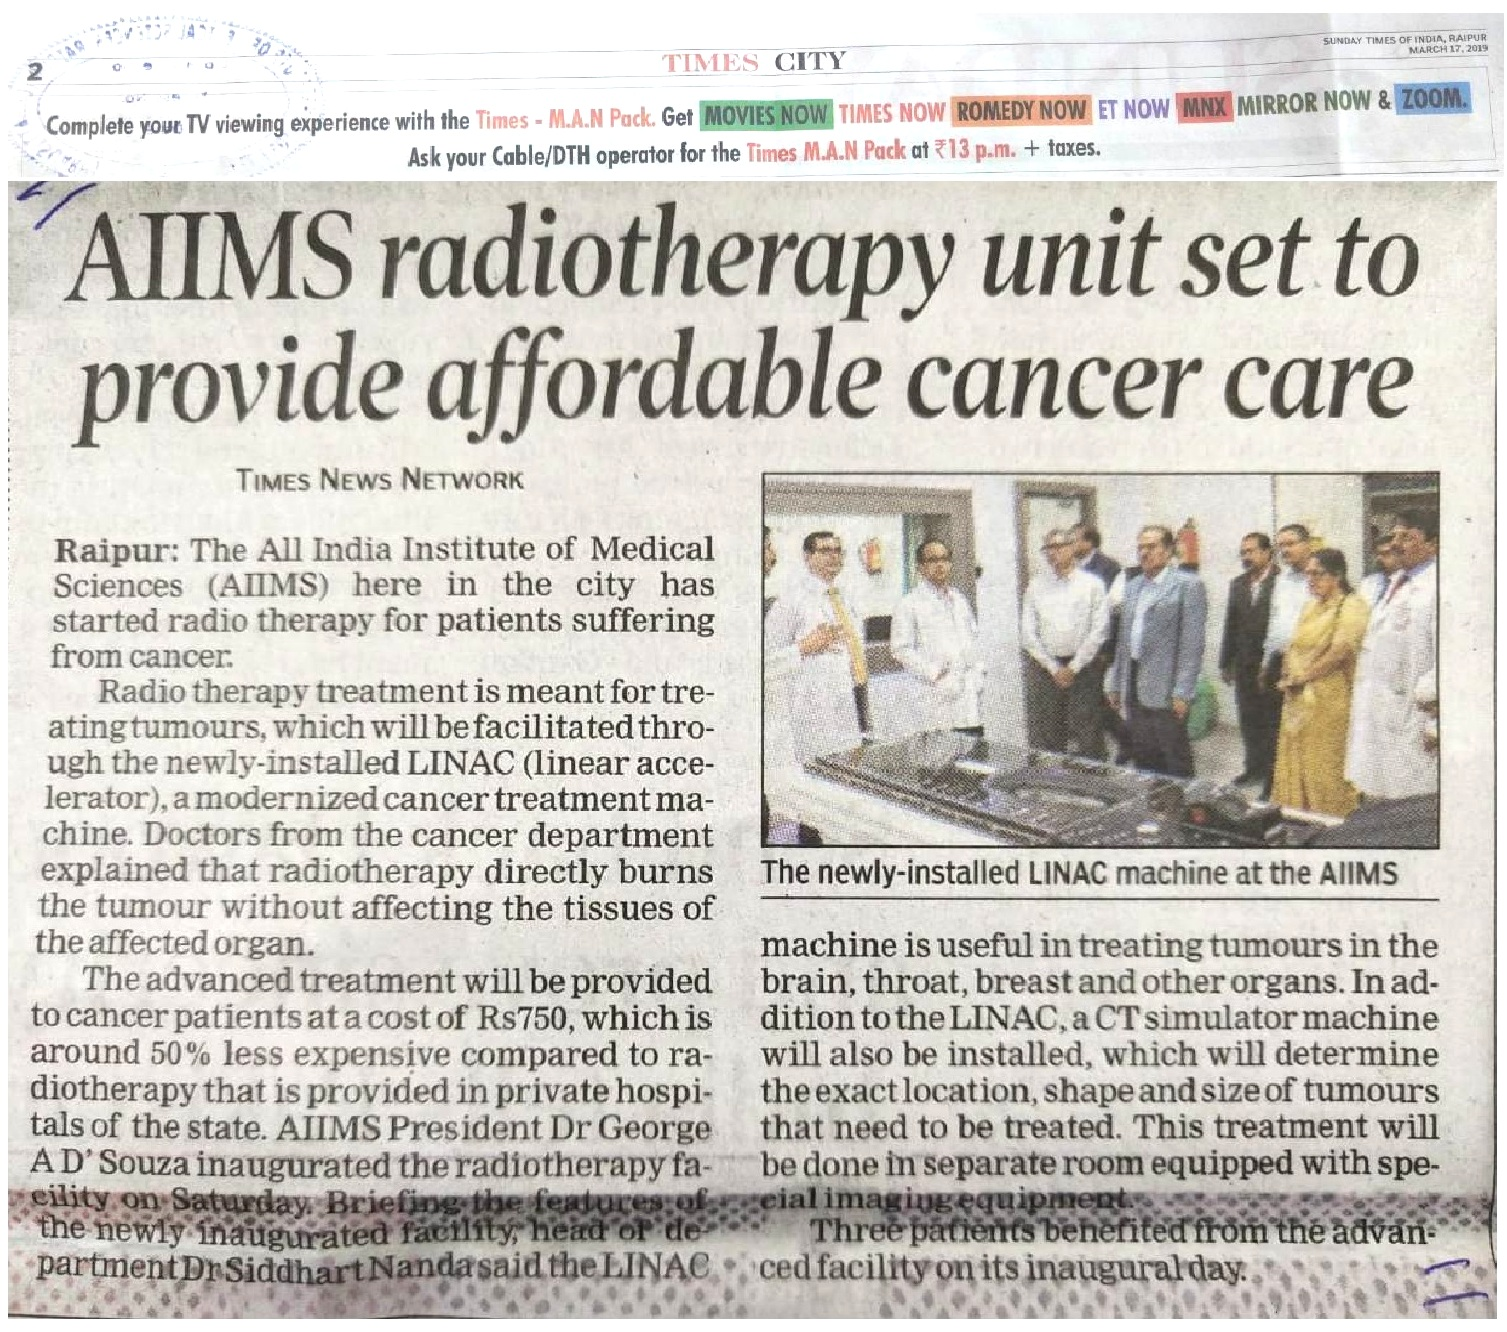 AIIMS President inaugurated the Radiotherapy Facility  on 16.03.2019.